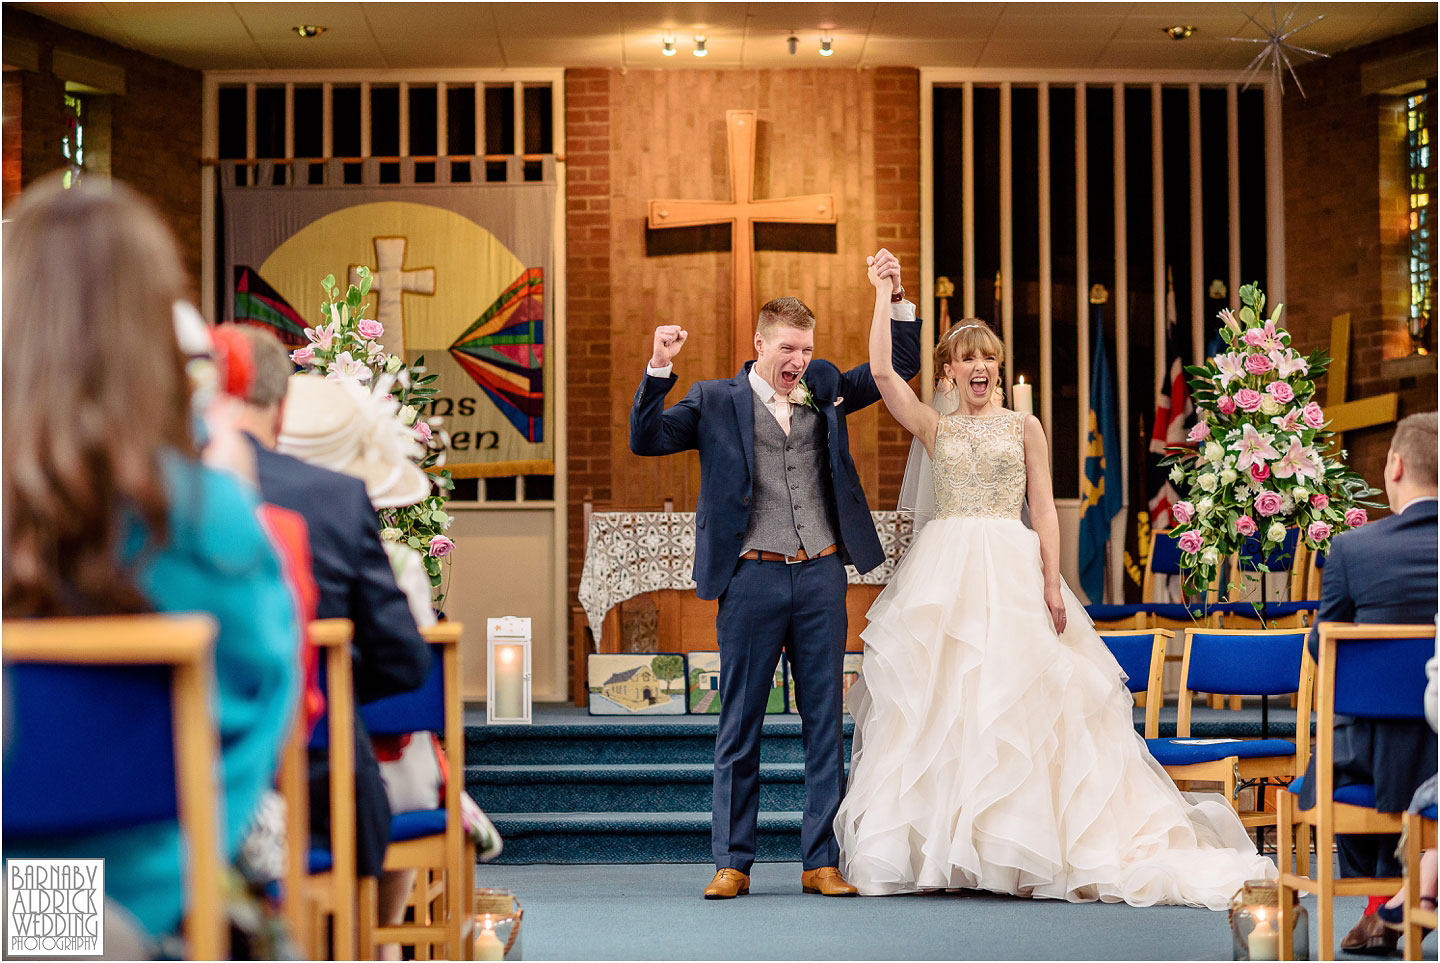 Newcastle Wedding Photography, Gateshead wedding photographer